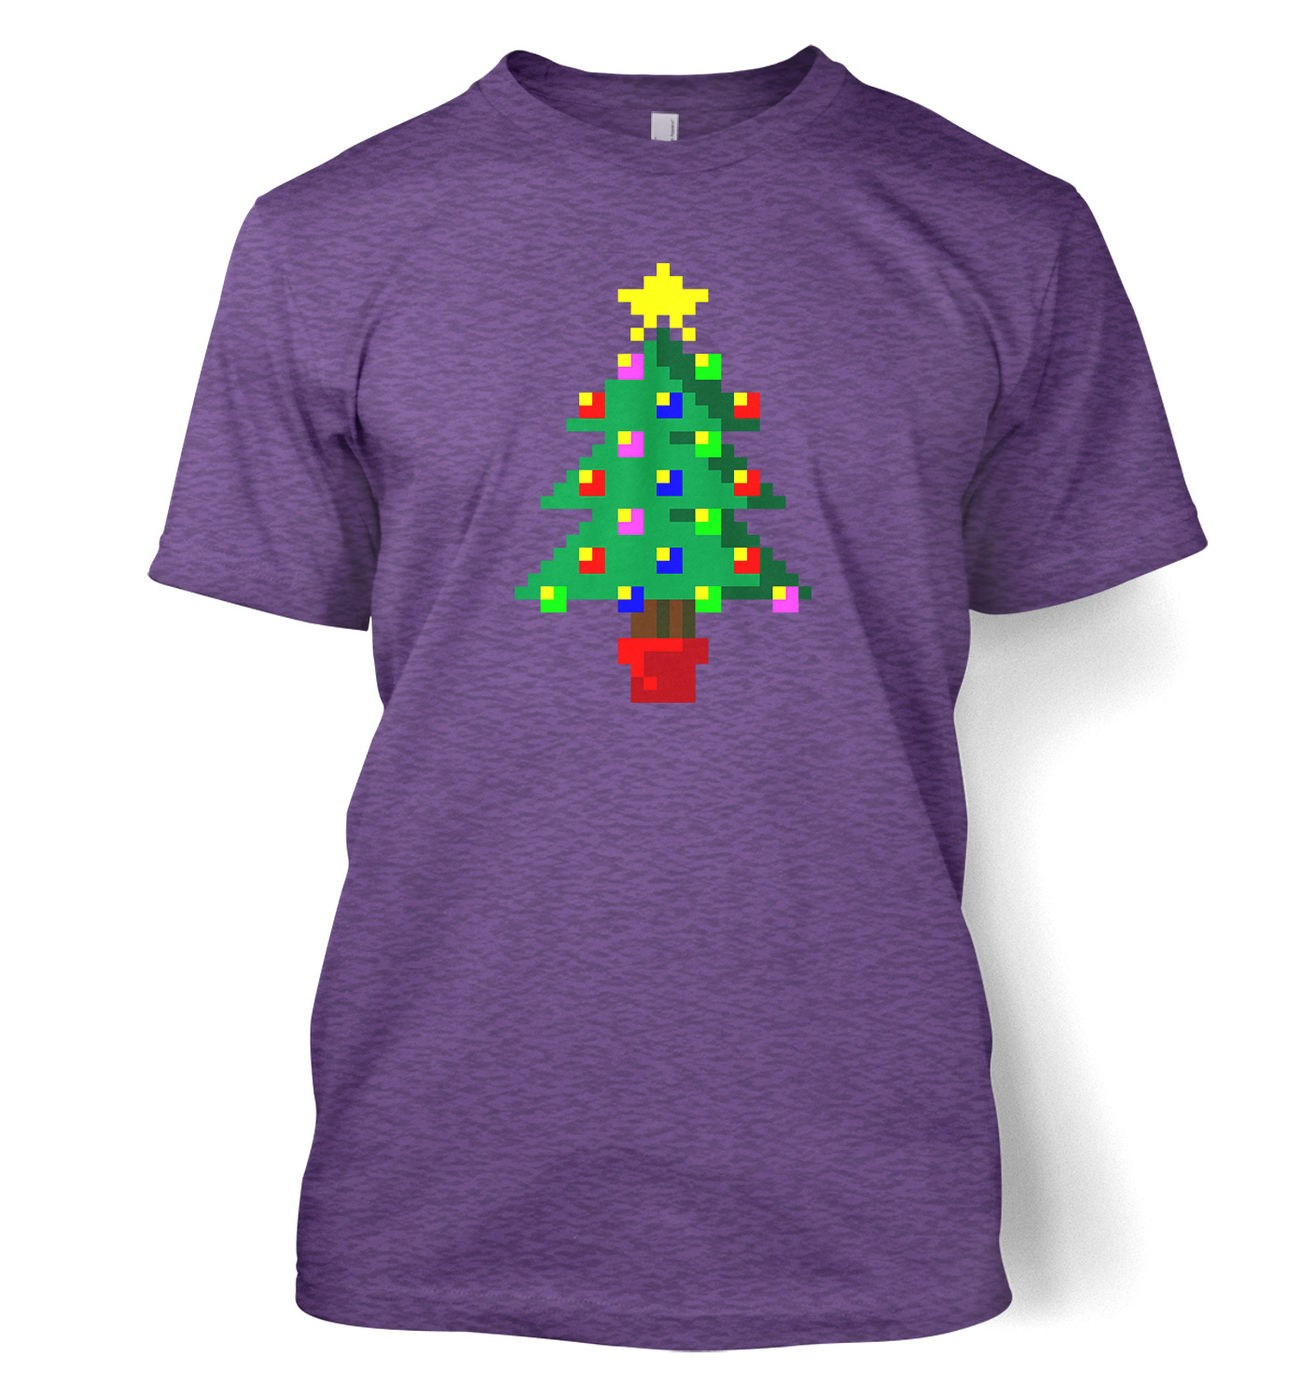 Pixellated Christmas Tree t-shirt